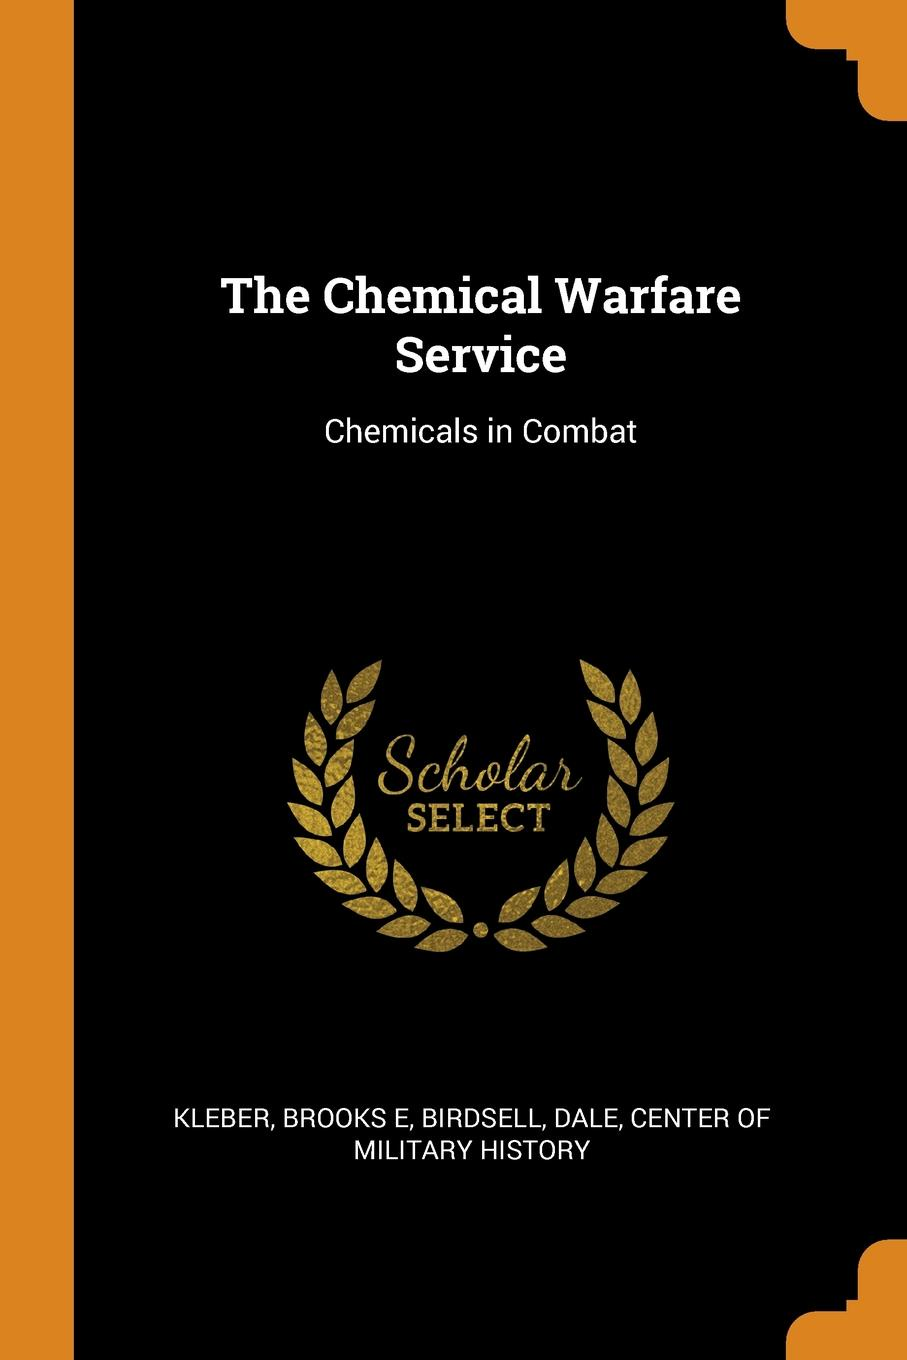 The Chemical Warfare Service. Chemicals in Combat